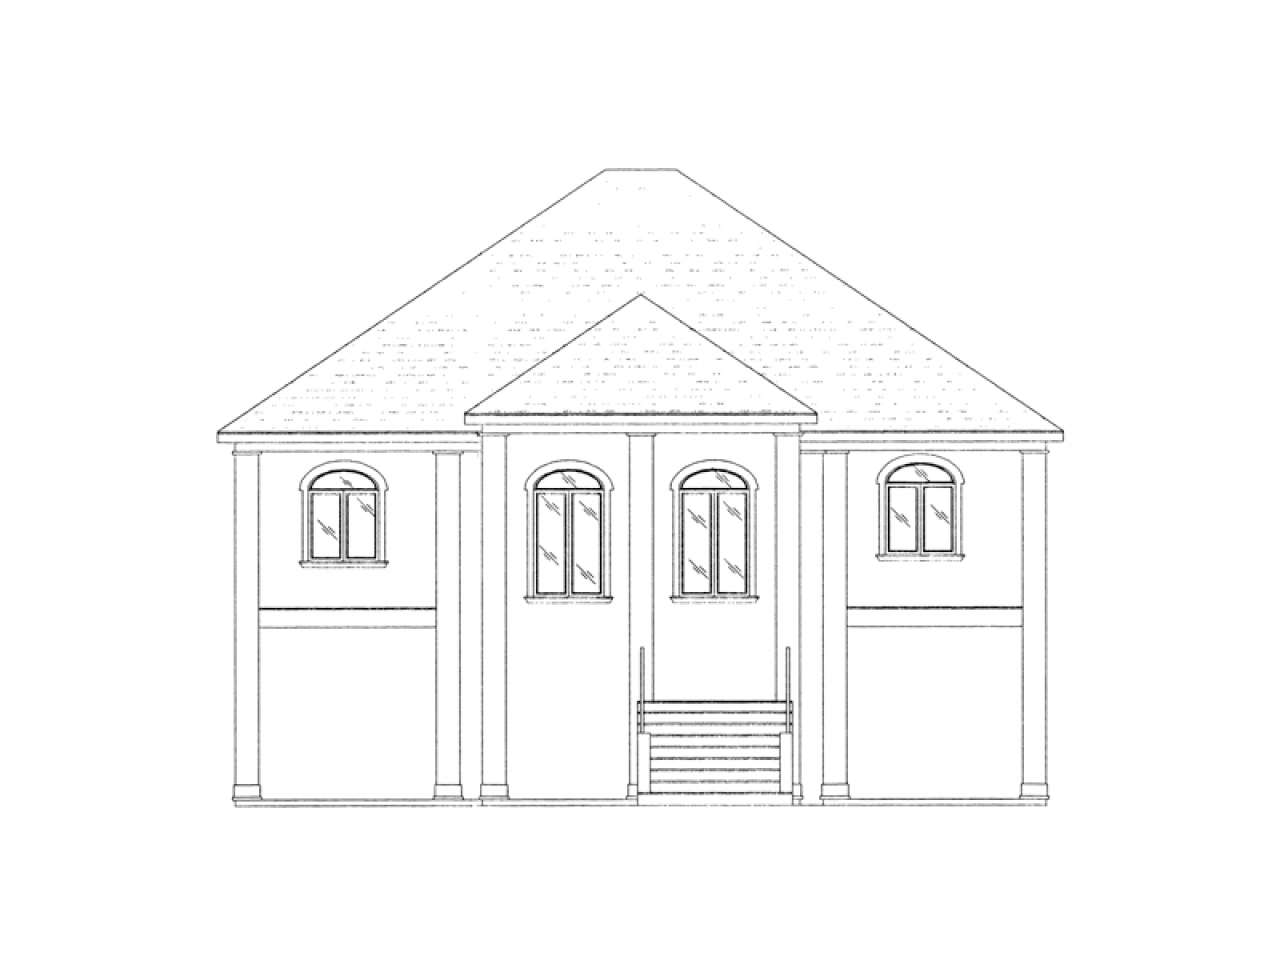 Home plans raised beach house home plans with elevators for Home plans with elevators